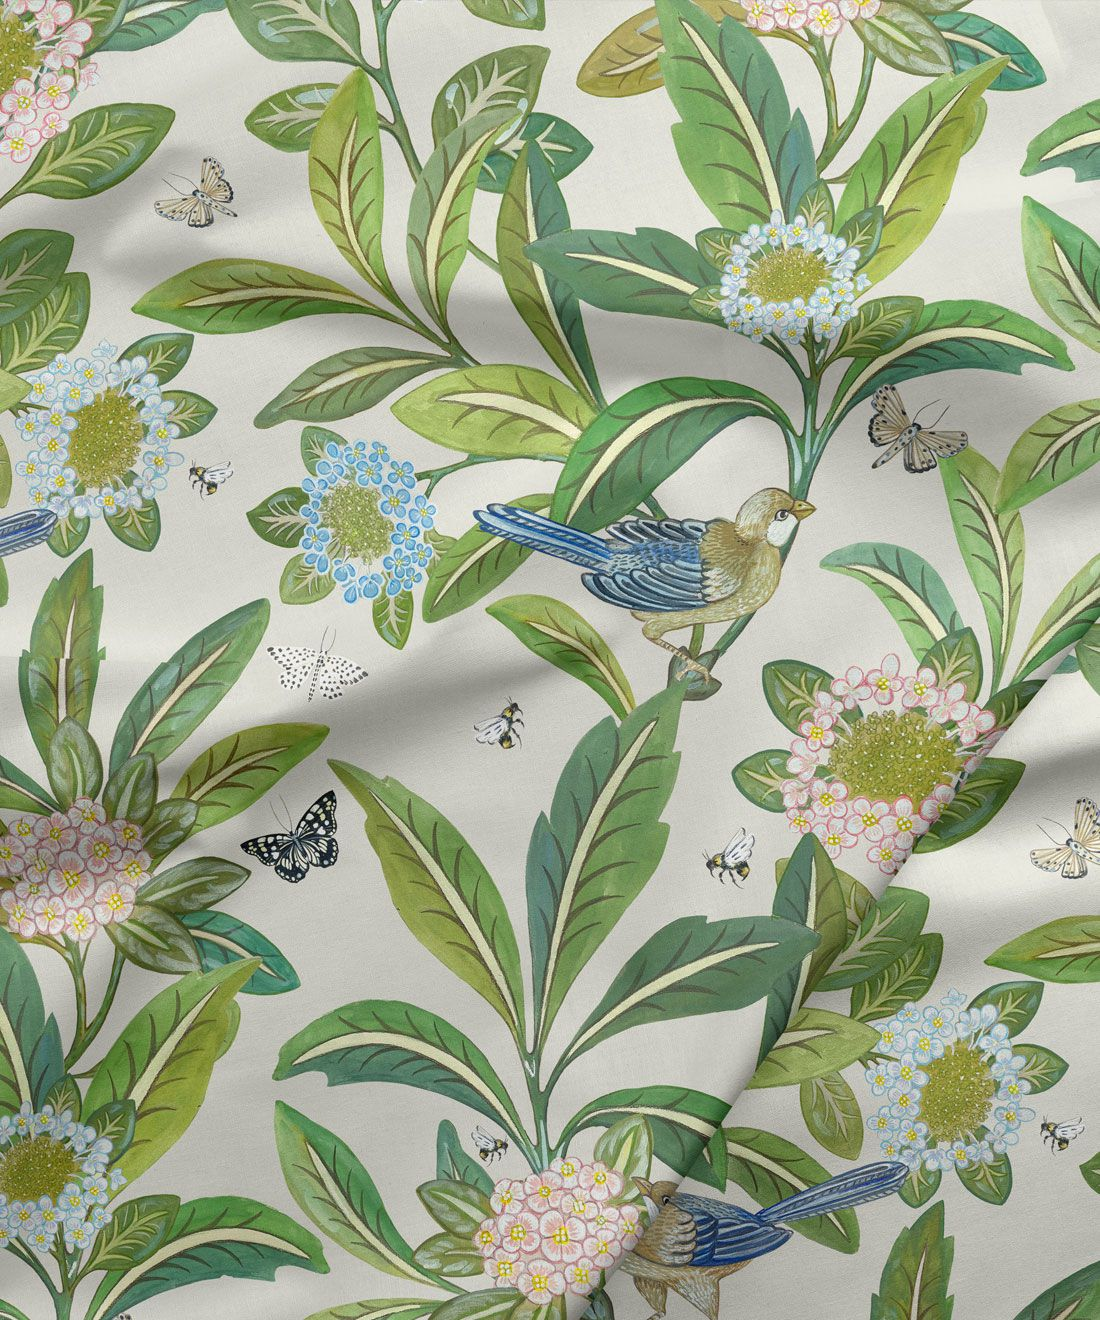 Summer Garden Fabric • Bethany Linz • Bird and Plant Fabric • Ivory Upholstery Fabric